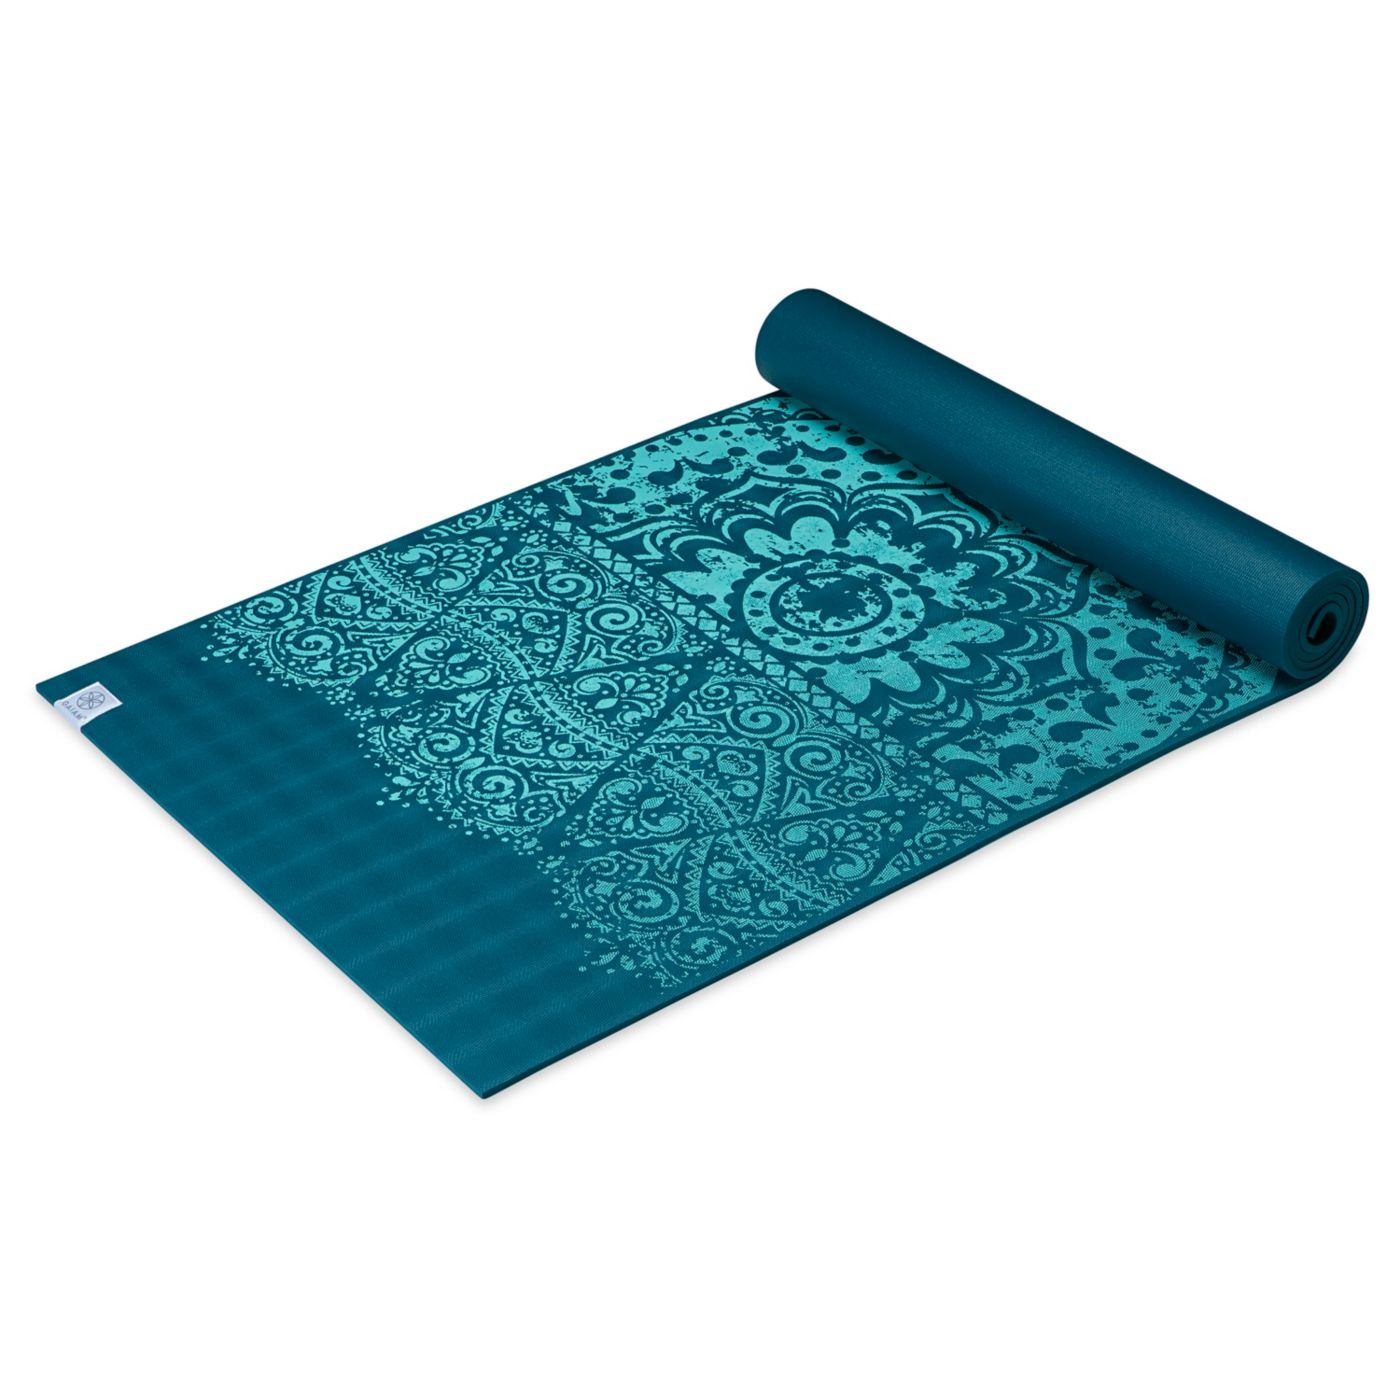 Gaiam Studio Select 5mm Premium Stable Grip Yoga Mat